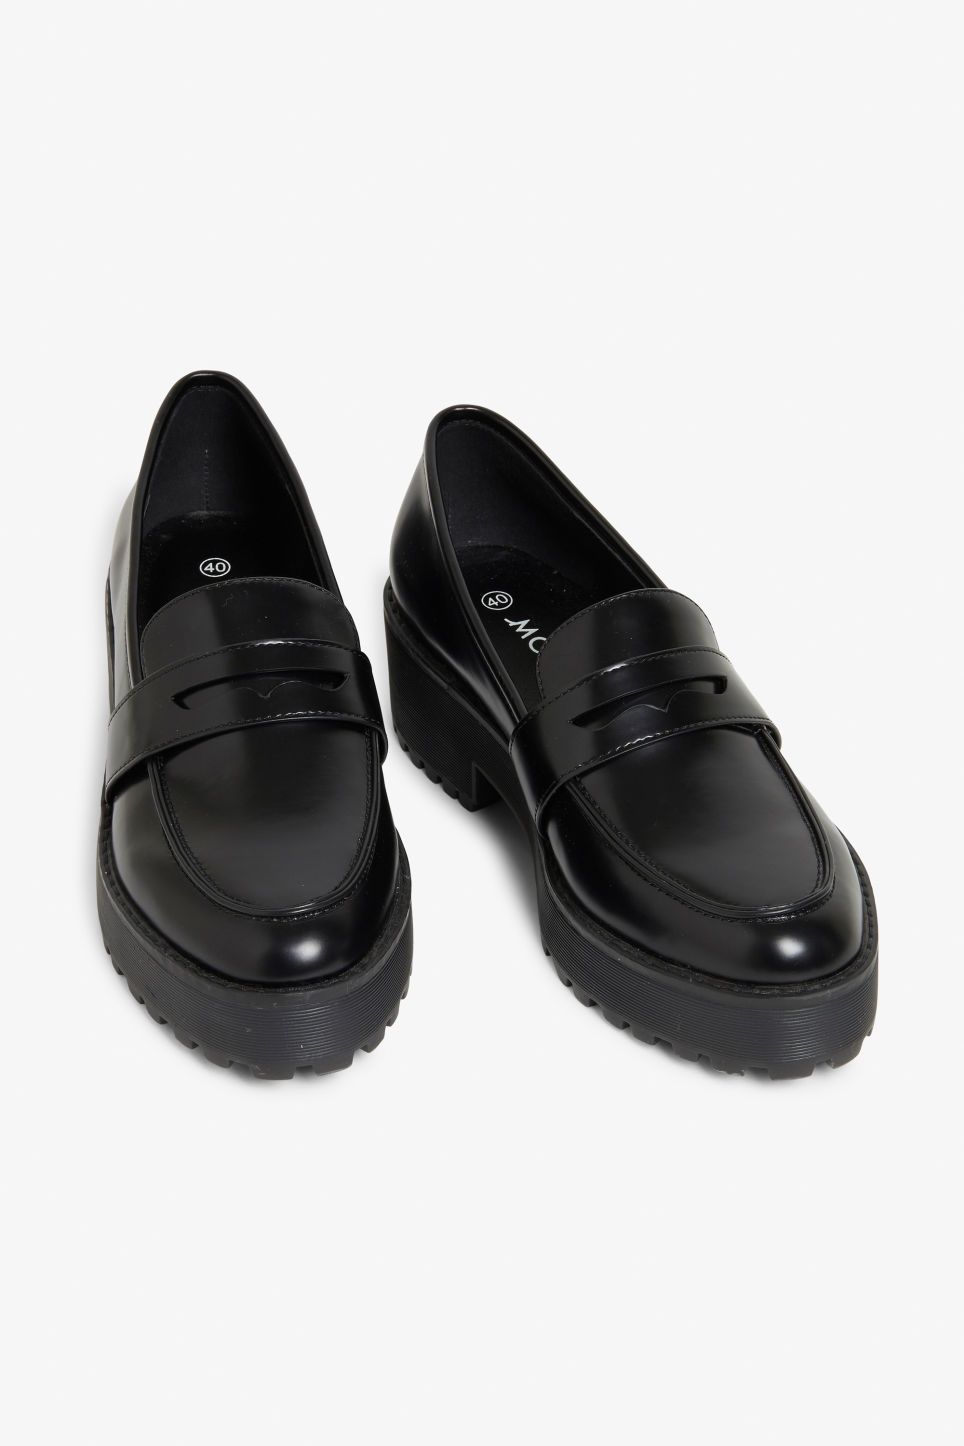 7d12b3feee8 Chunky platform loafers - Black - Shoes in 2019 | Fashun | Loafers ...